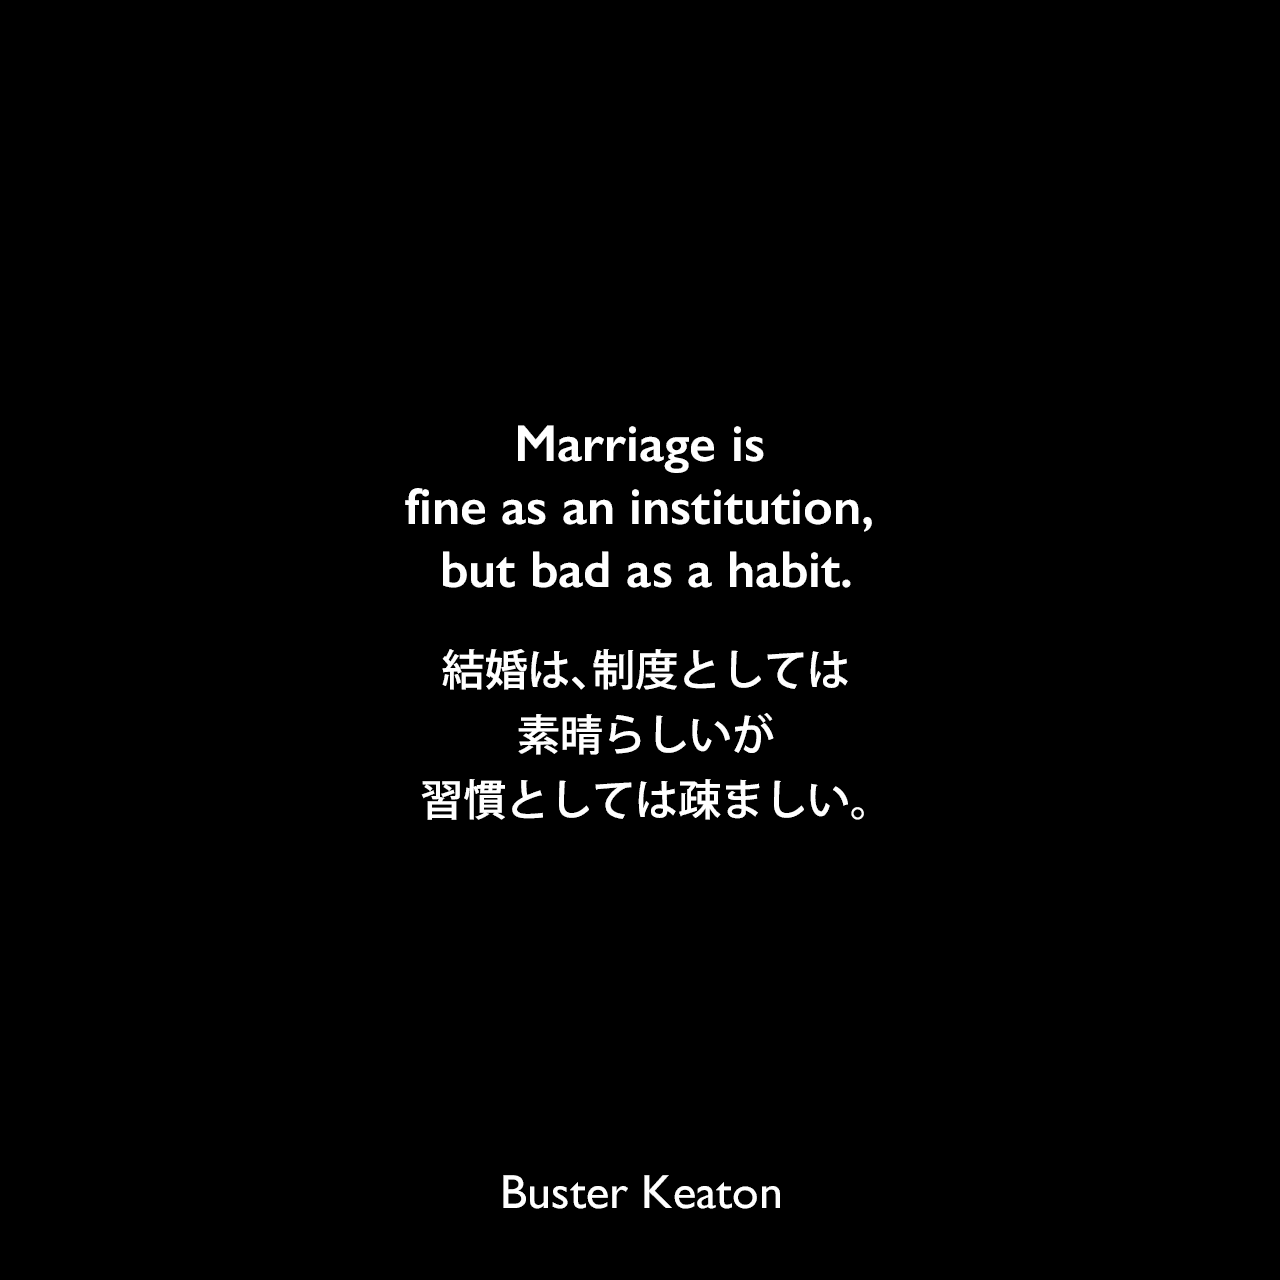 Marriage is fine as an institution, but bad as a habit.結婚は、制度としては素晴らしいが、習慣としては疎ましい。- 1921年のMotion PictureのインタビューBuster Keaton